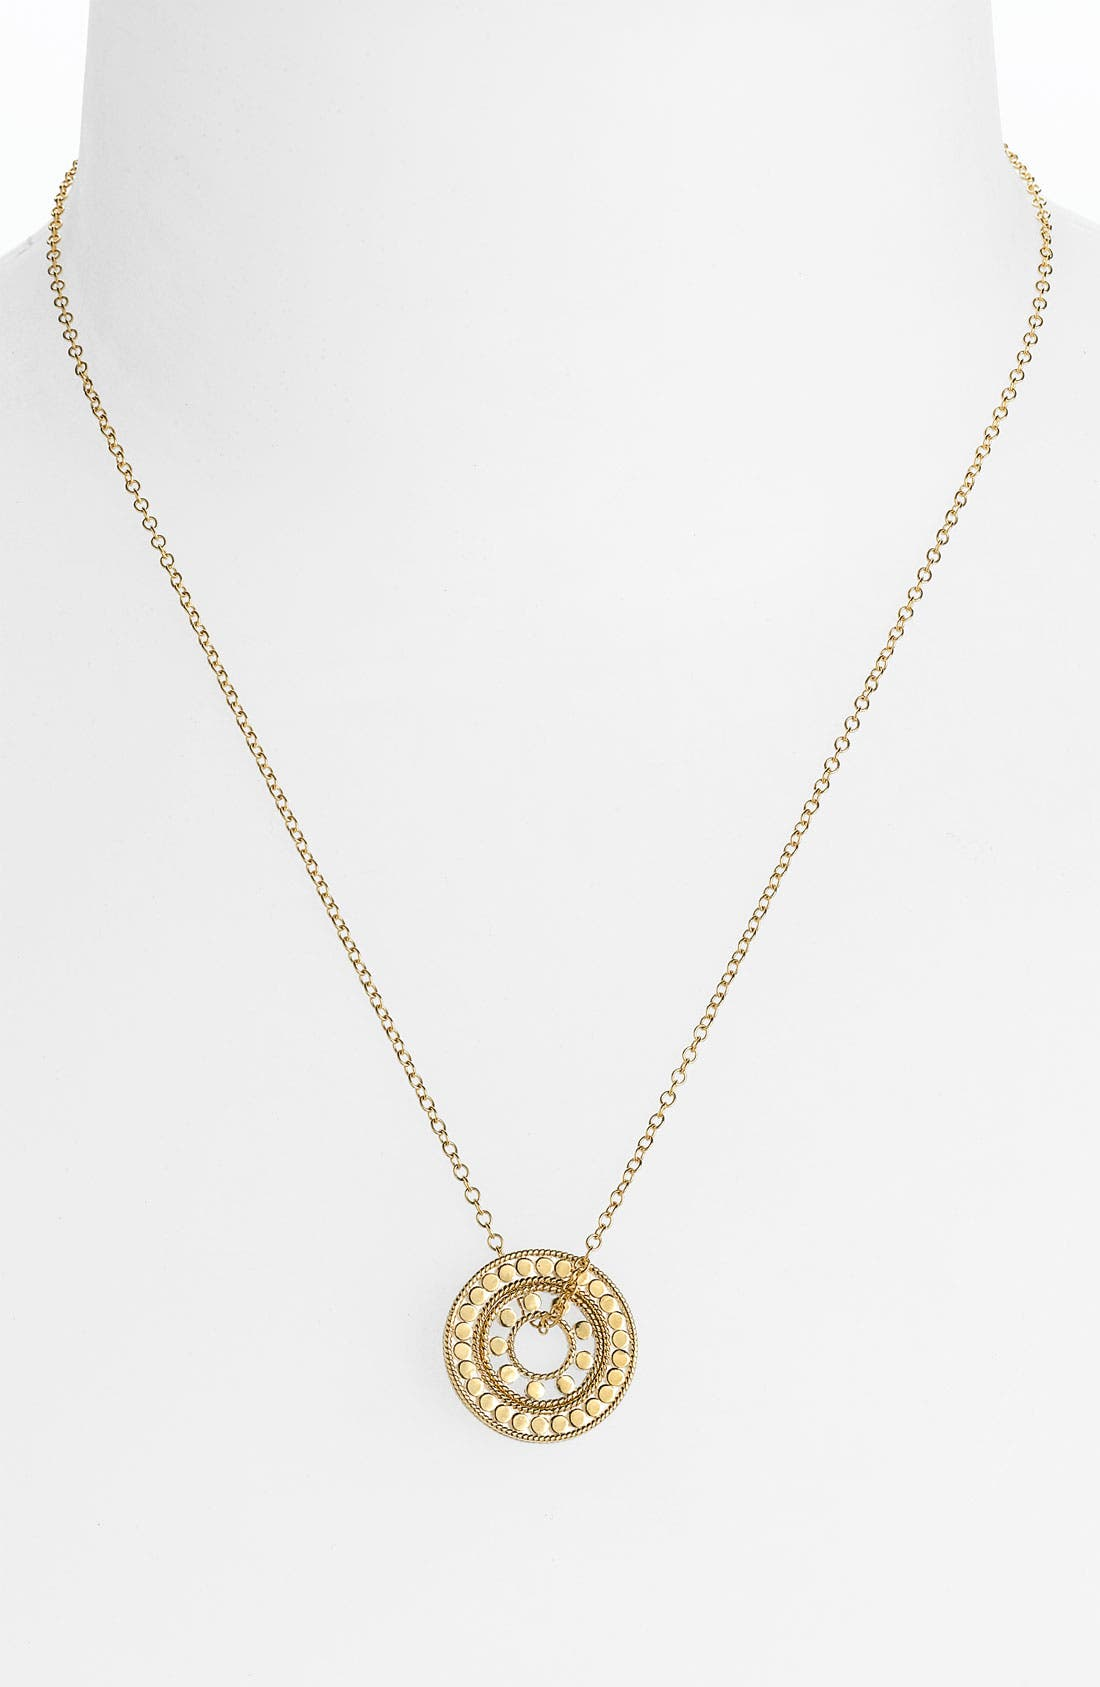 Main Image - Anna Beck 'Lombok' Double Circle Pendant Necklace